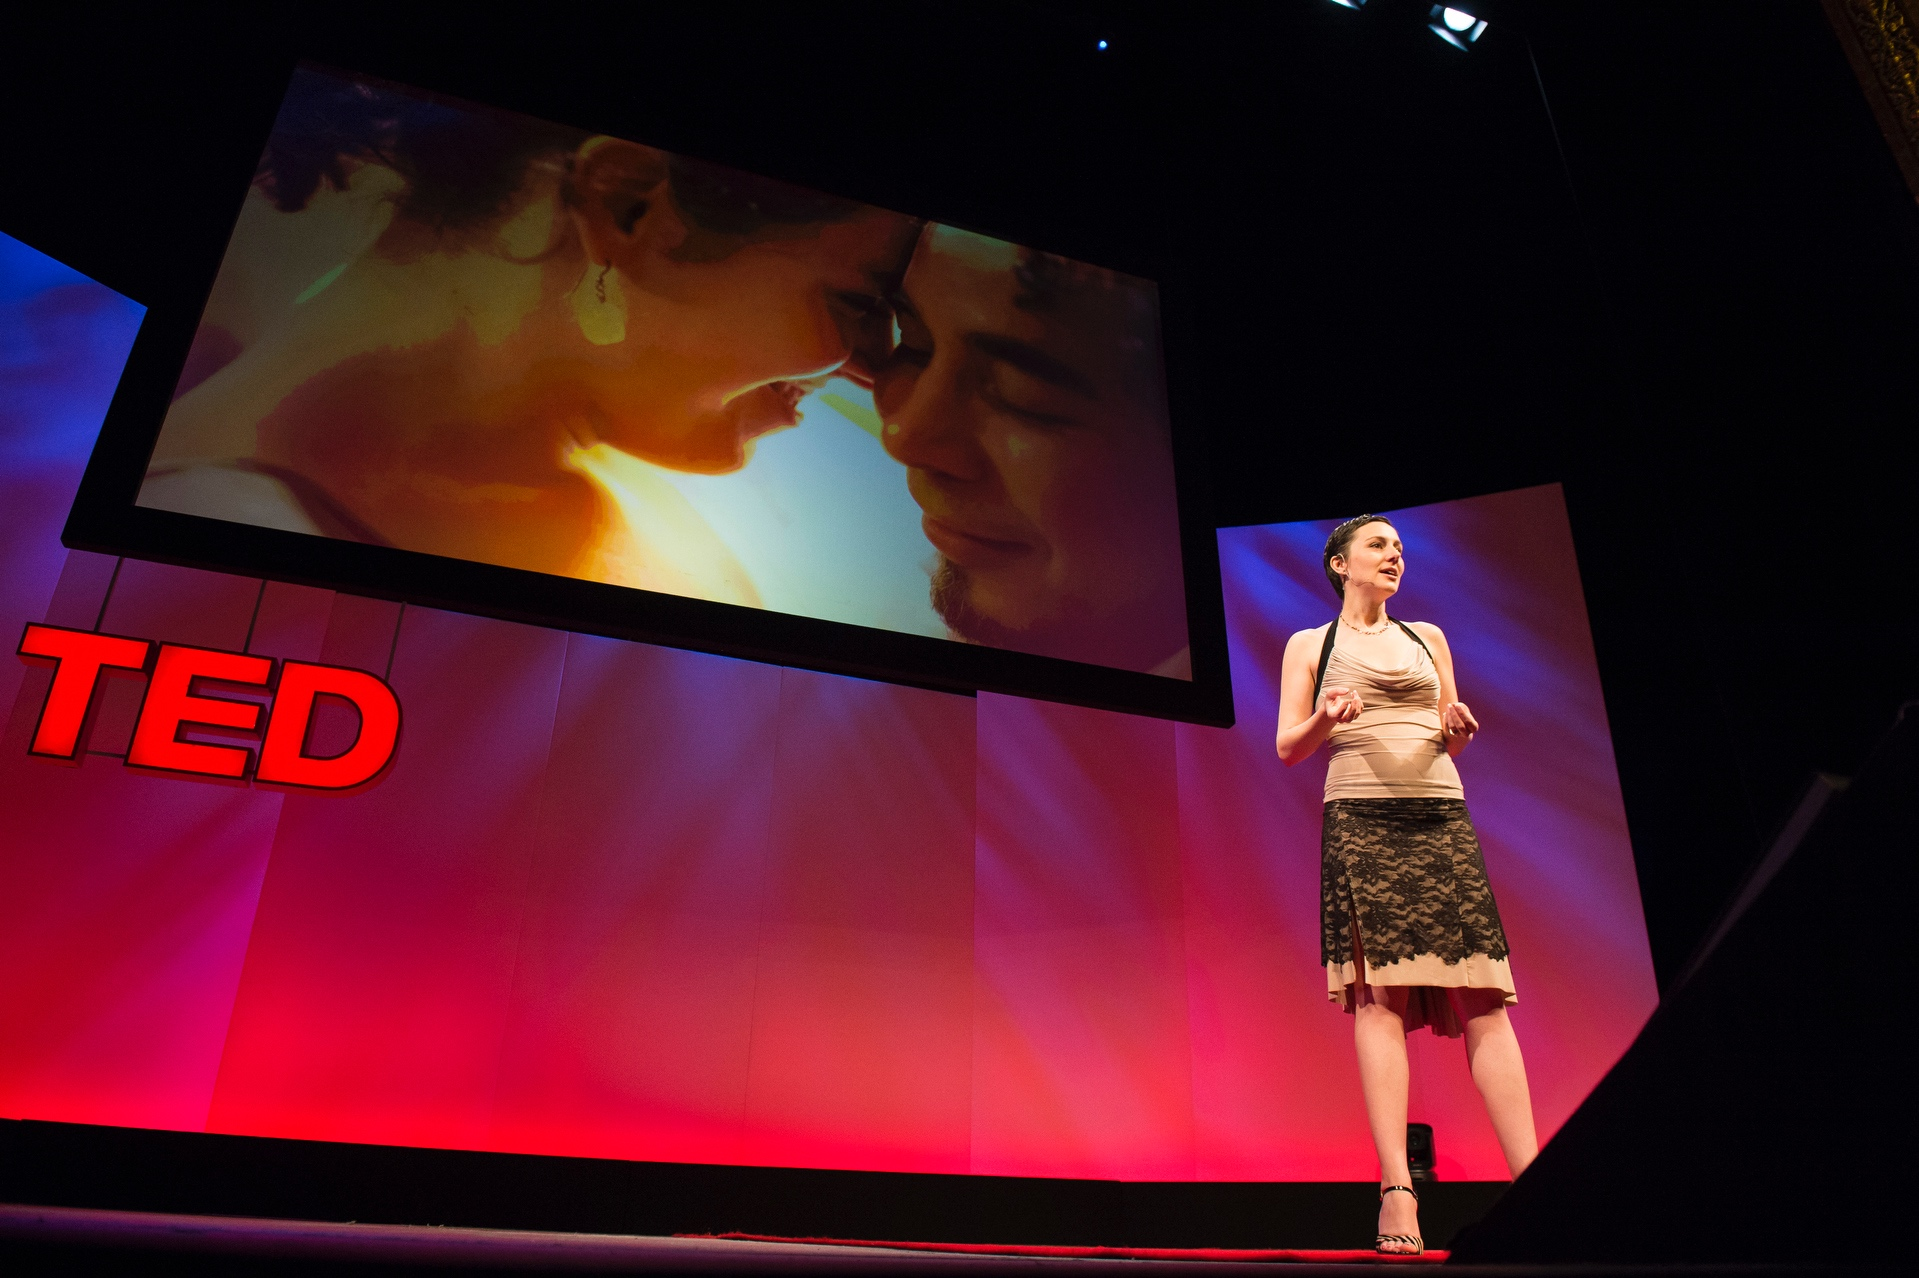 Aneta Key at TED